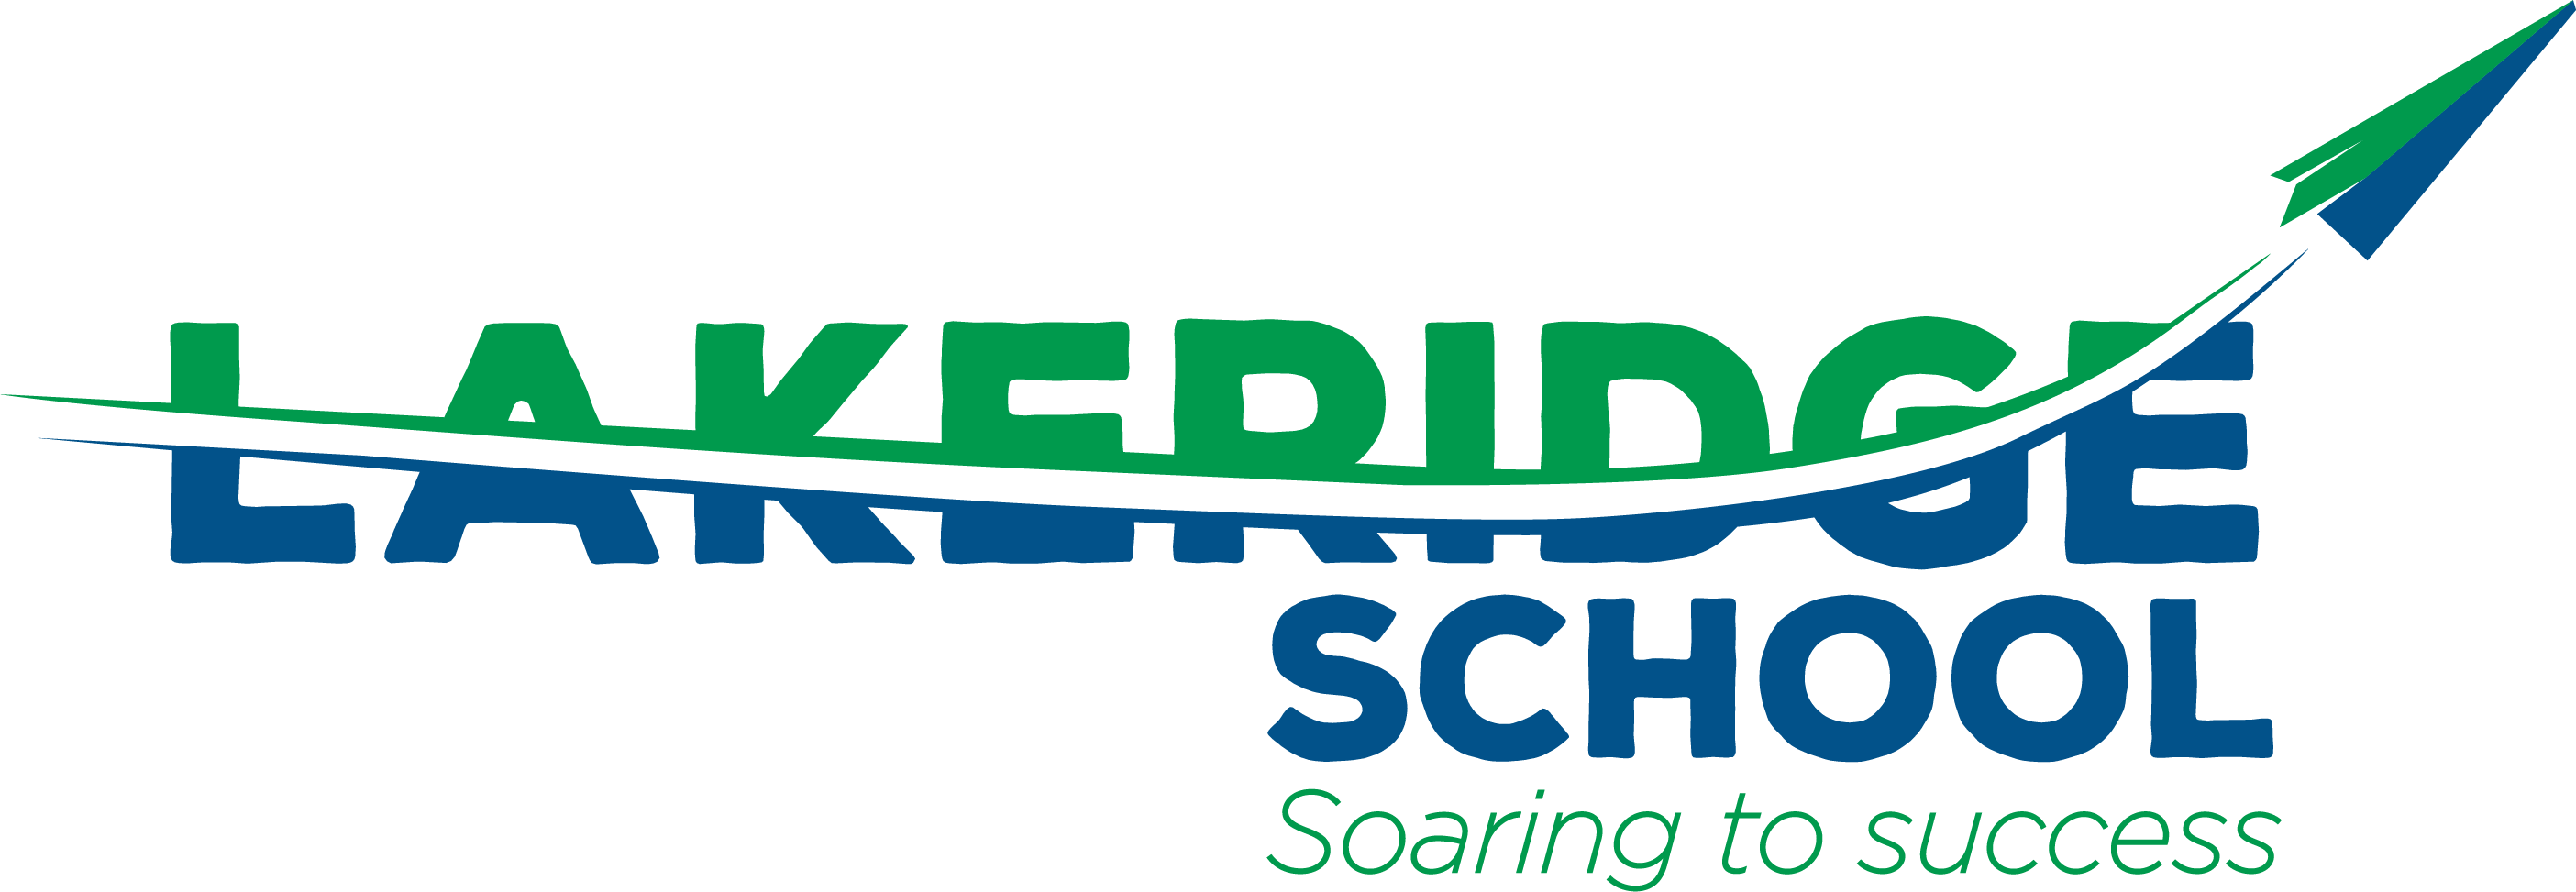 Lakeridge School logo